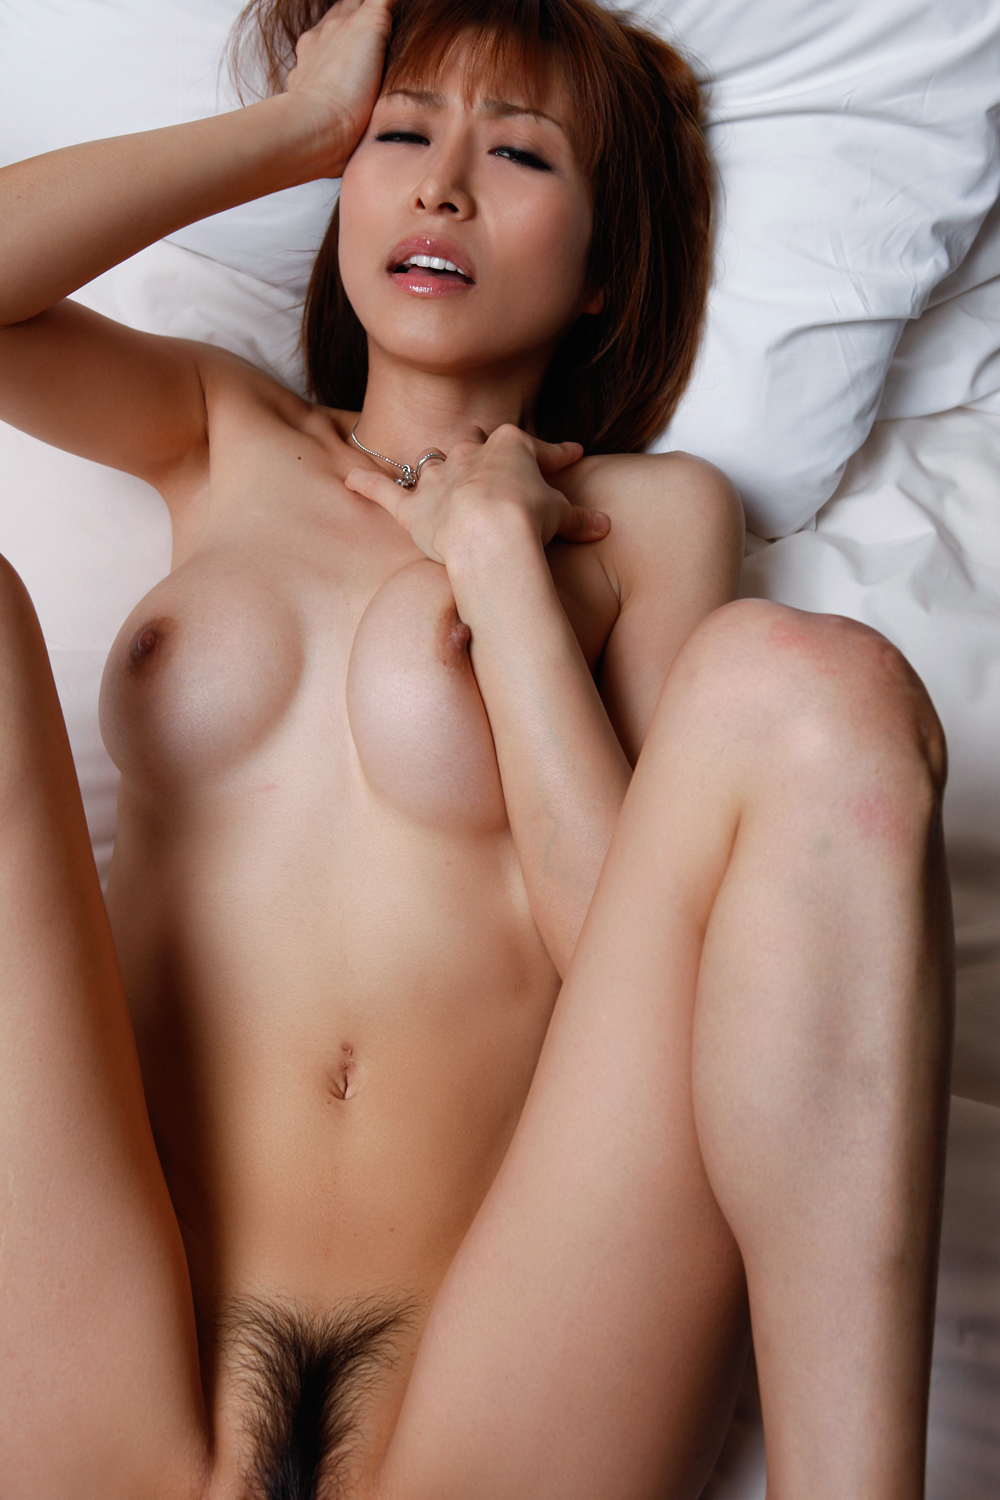 Hot Sexy Asian Nudes